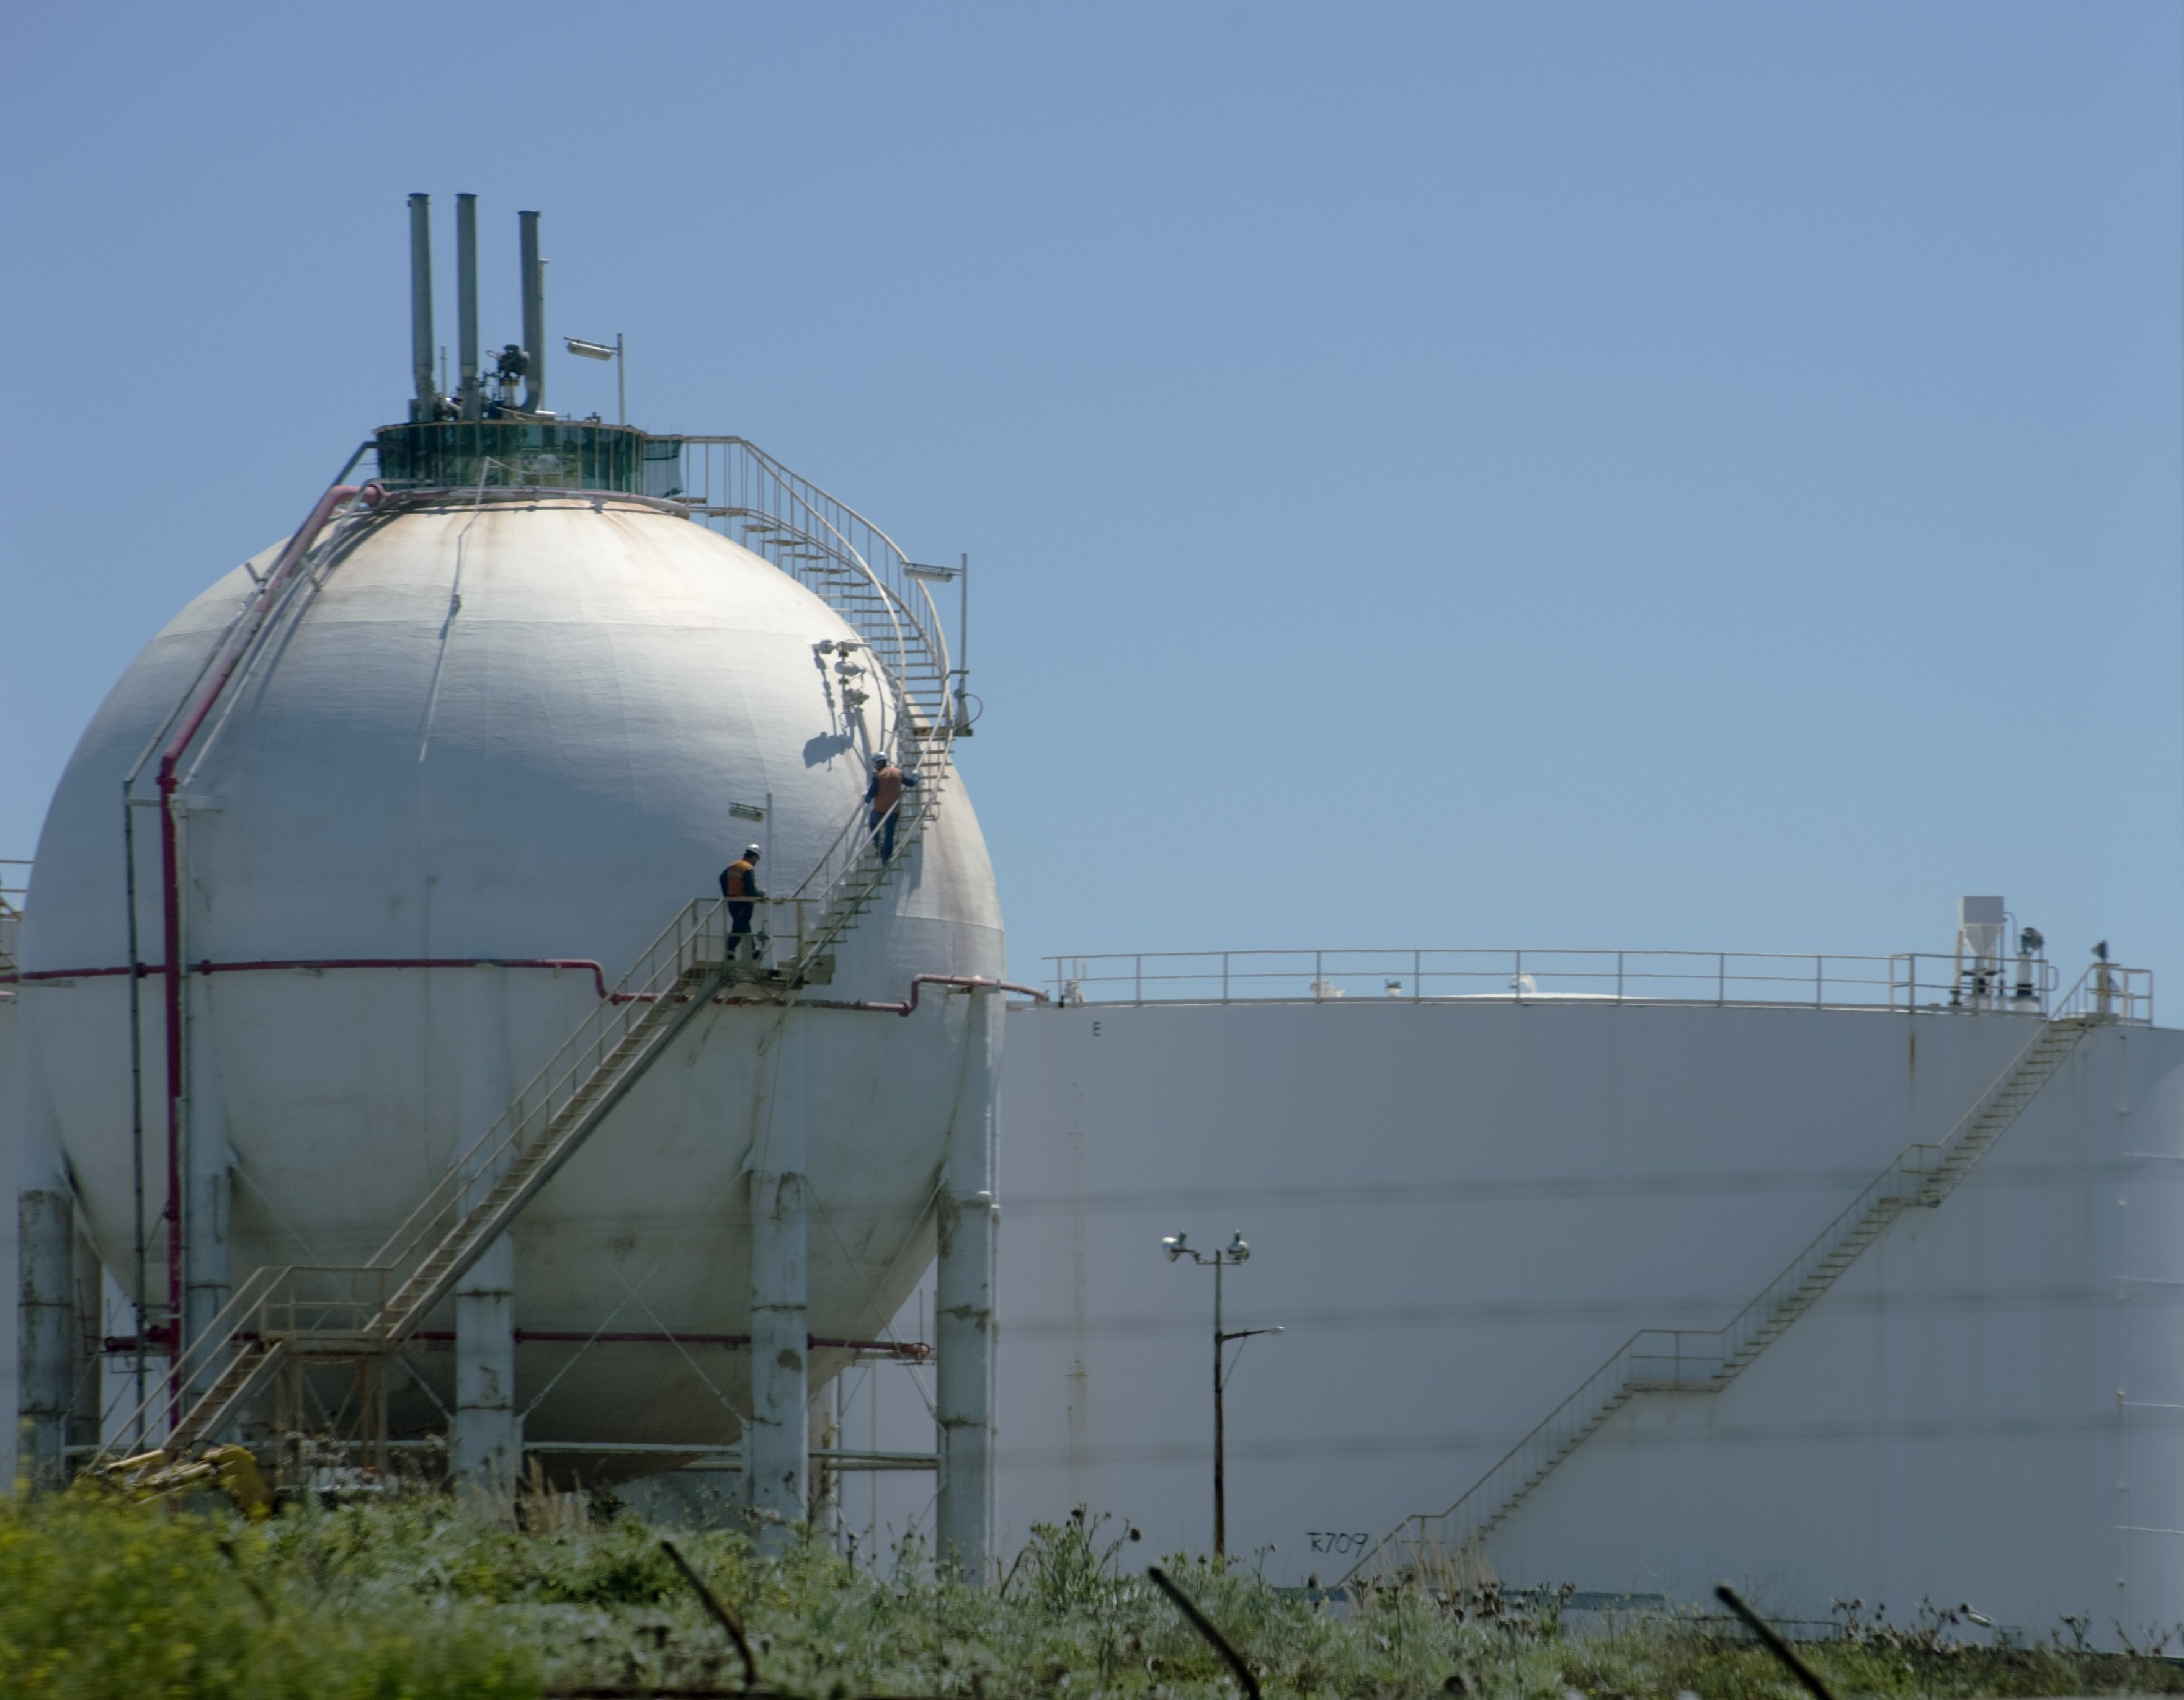 tanks at a chemical plant